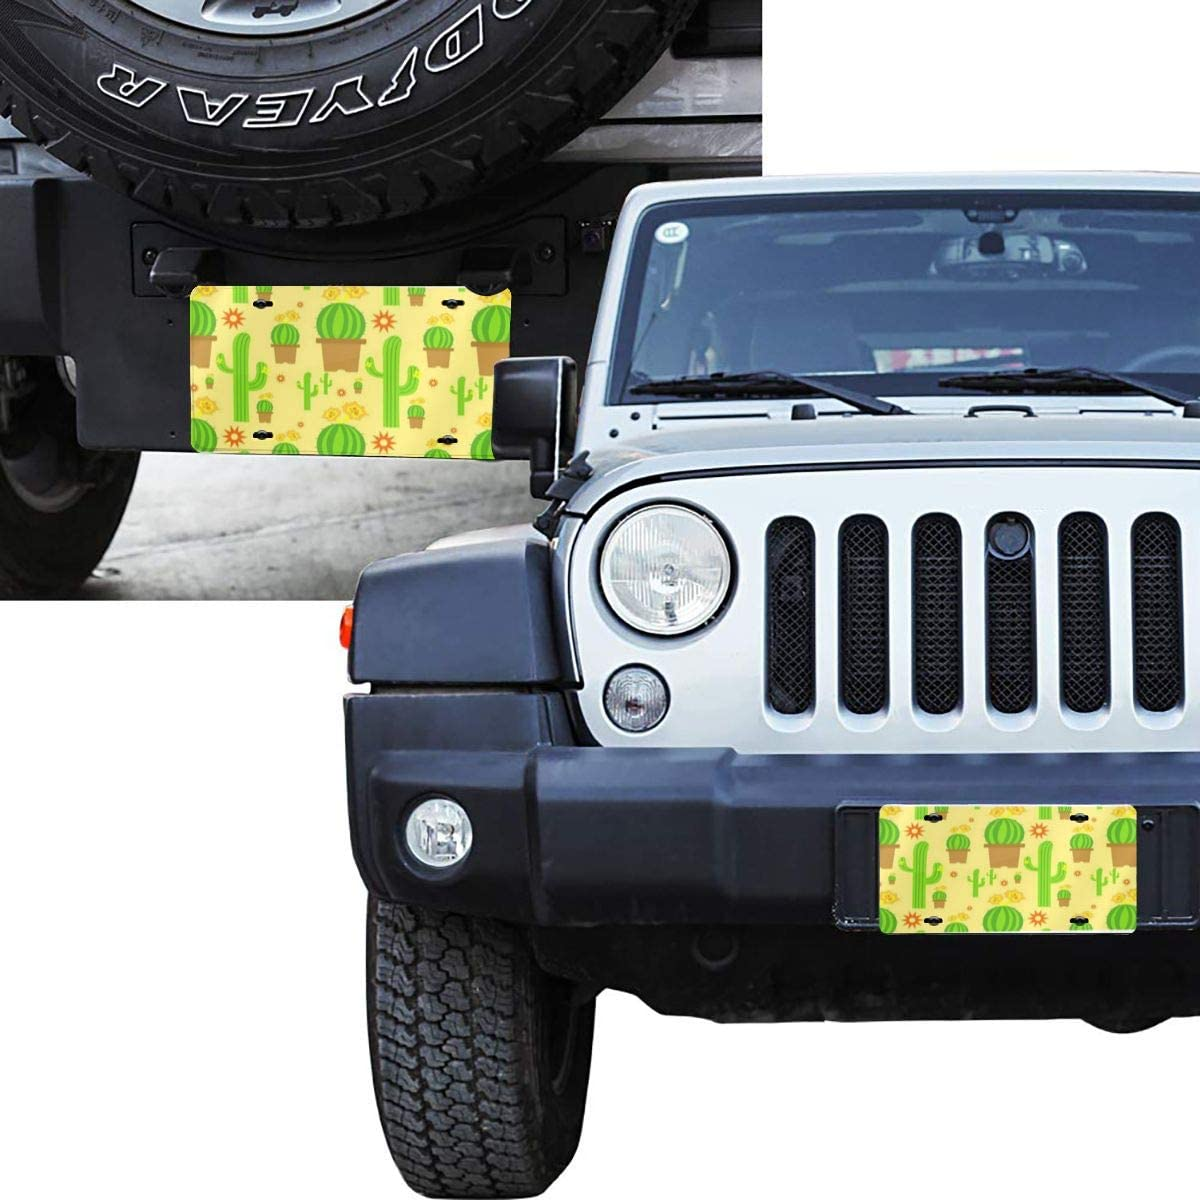 License Plates Colorful Paisley Waterproof Metal Auto Tag Signs for Car Decoration 6 X 12 Inches